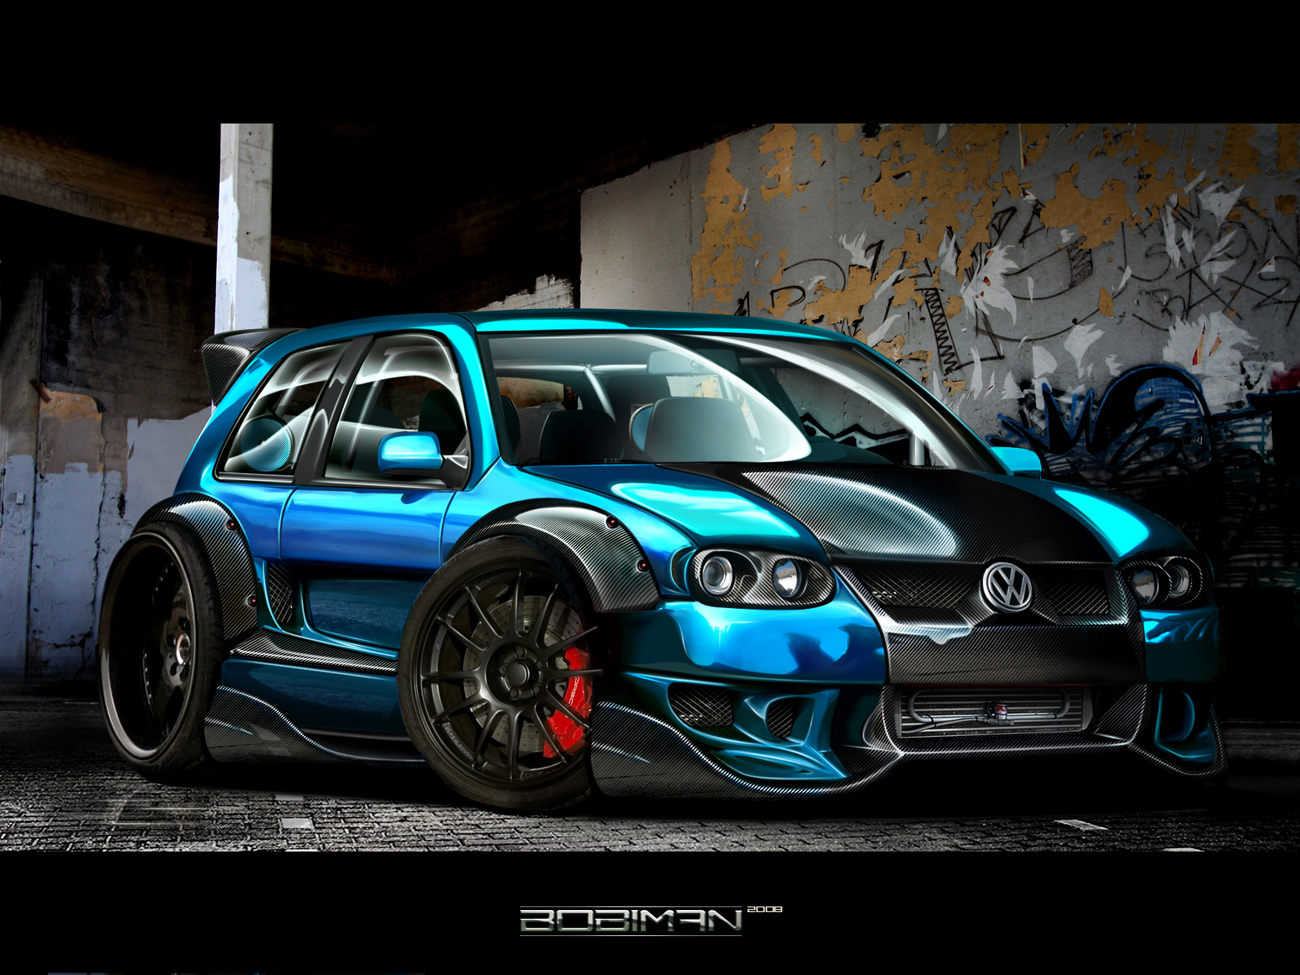 Wallpapers facebook cover animated car wallpaper cool - Car desktop wallpaper ...